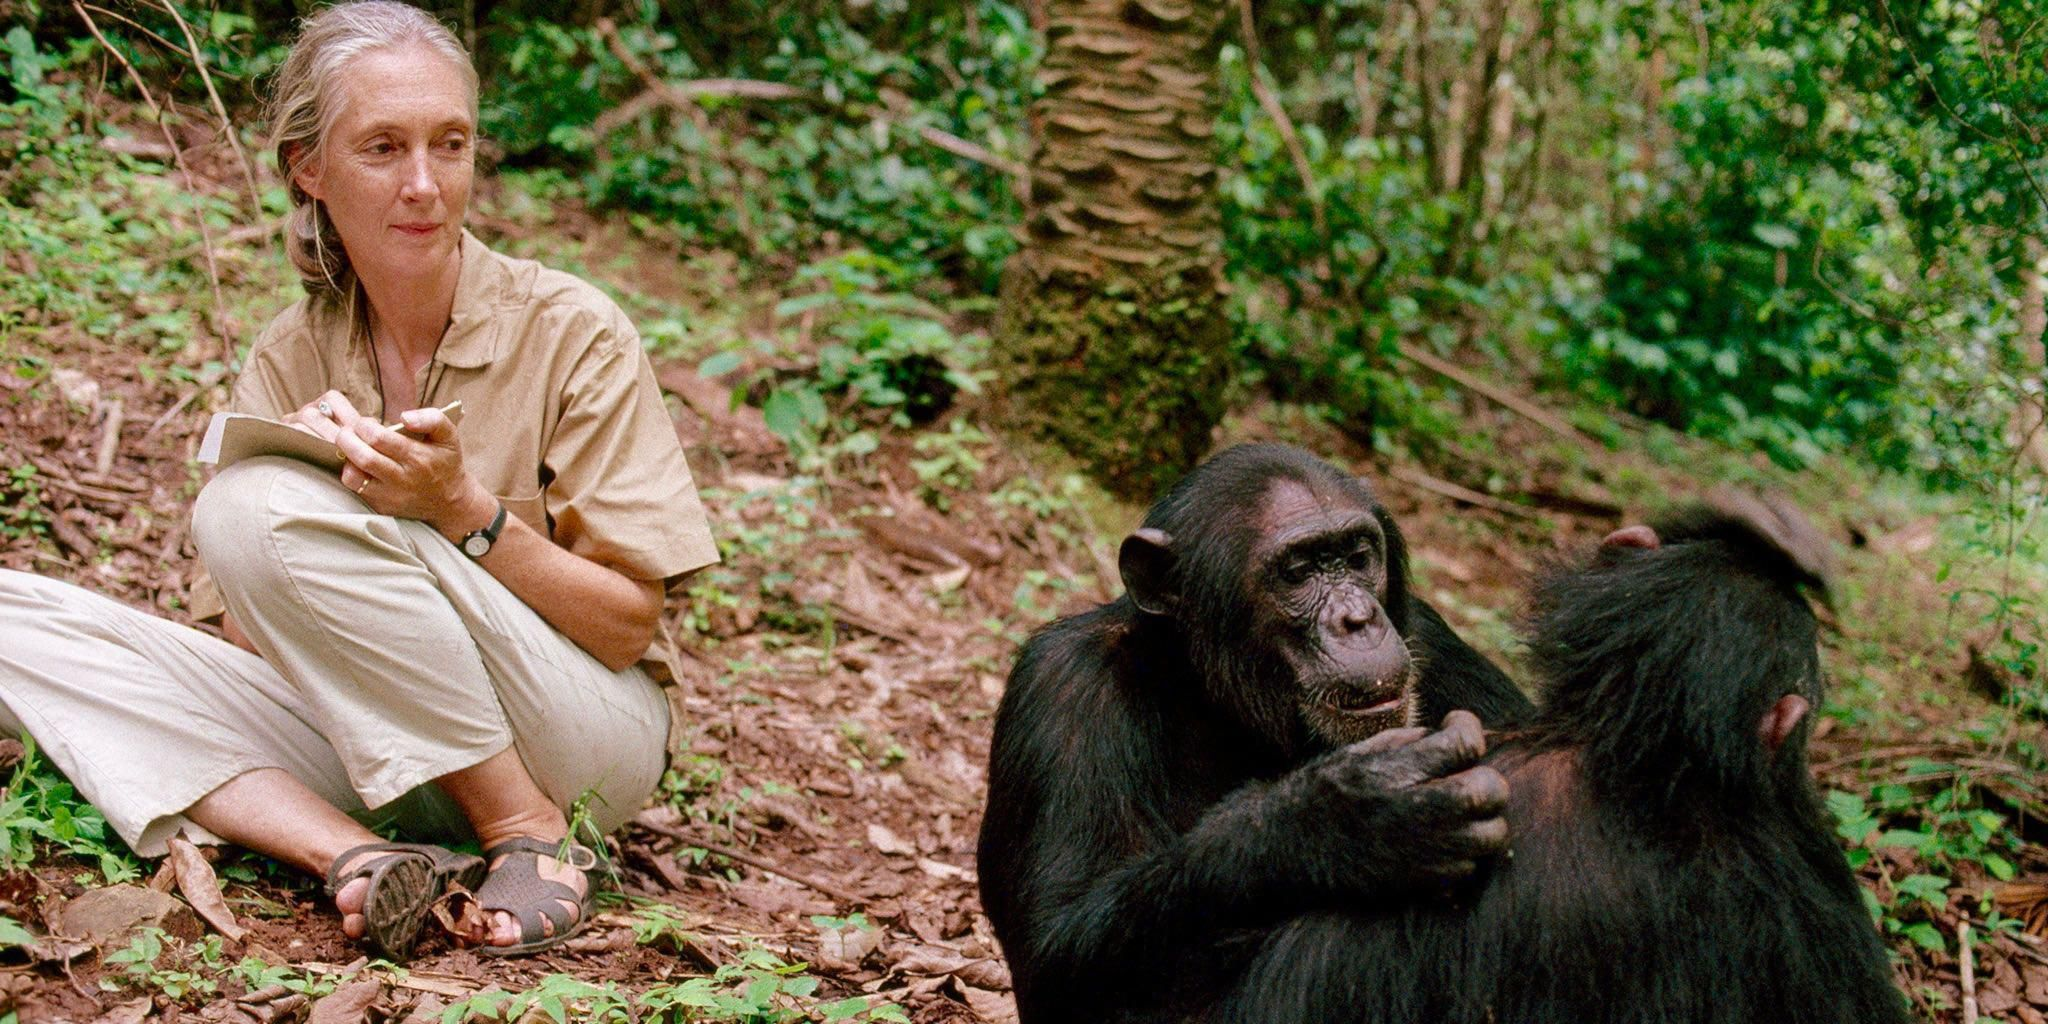 Earth Day 2020: 'We desperately need hope now,' Jane Goodall says